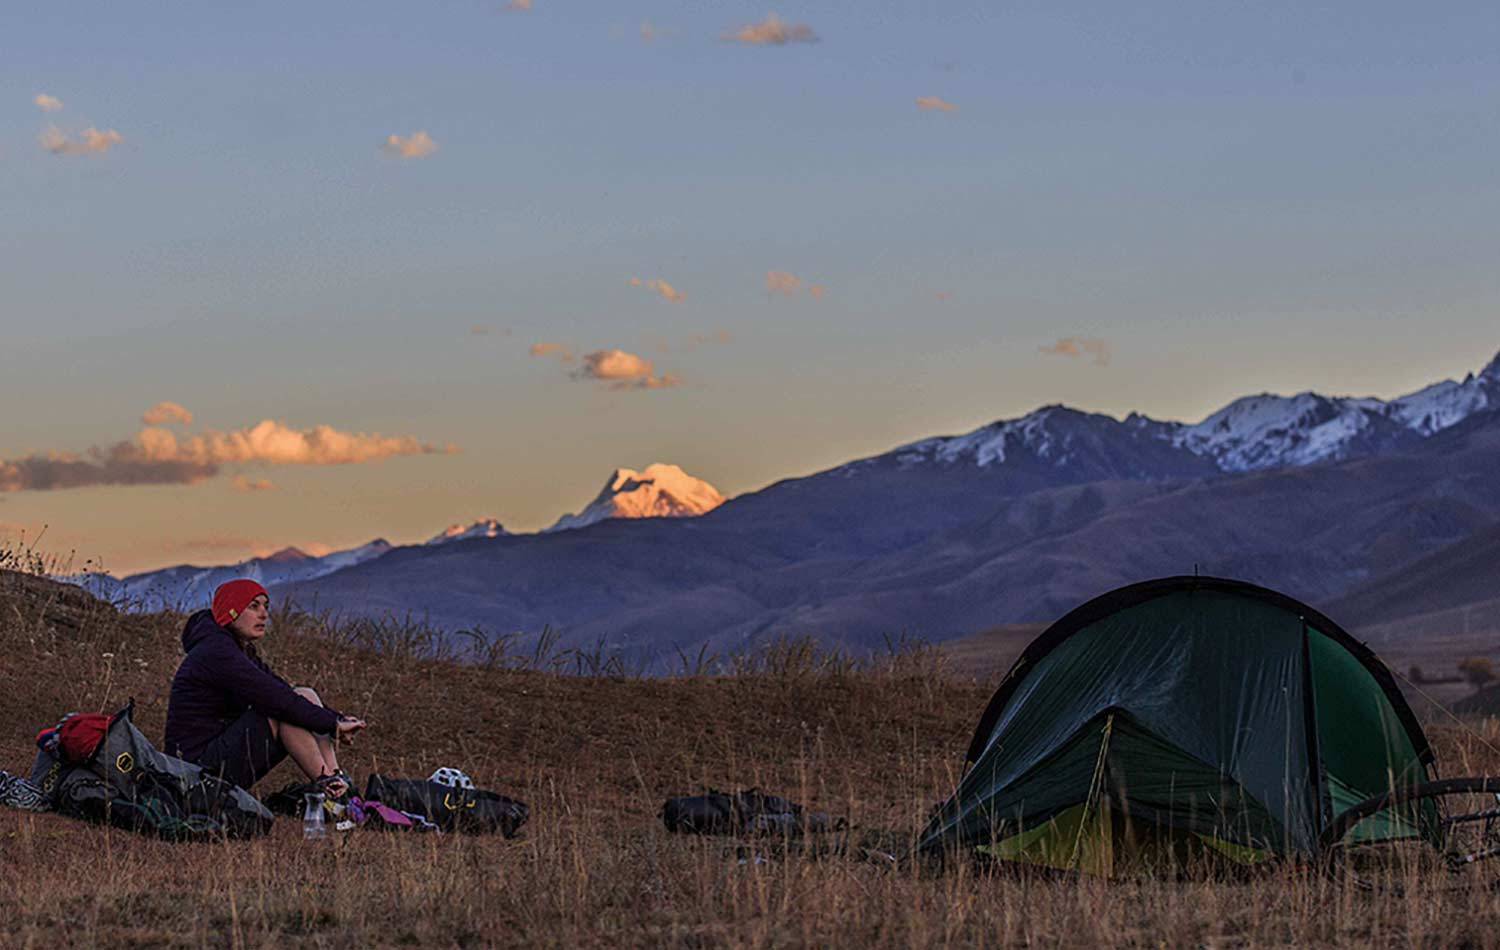 A person camping in the mountains: She is sitting outside next to the tent and their bikepacking bags